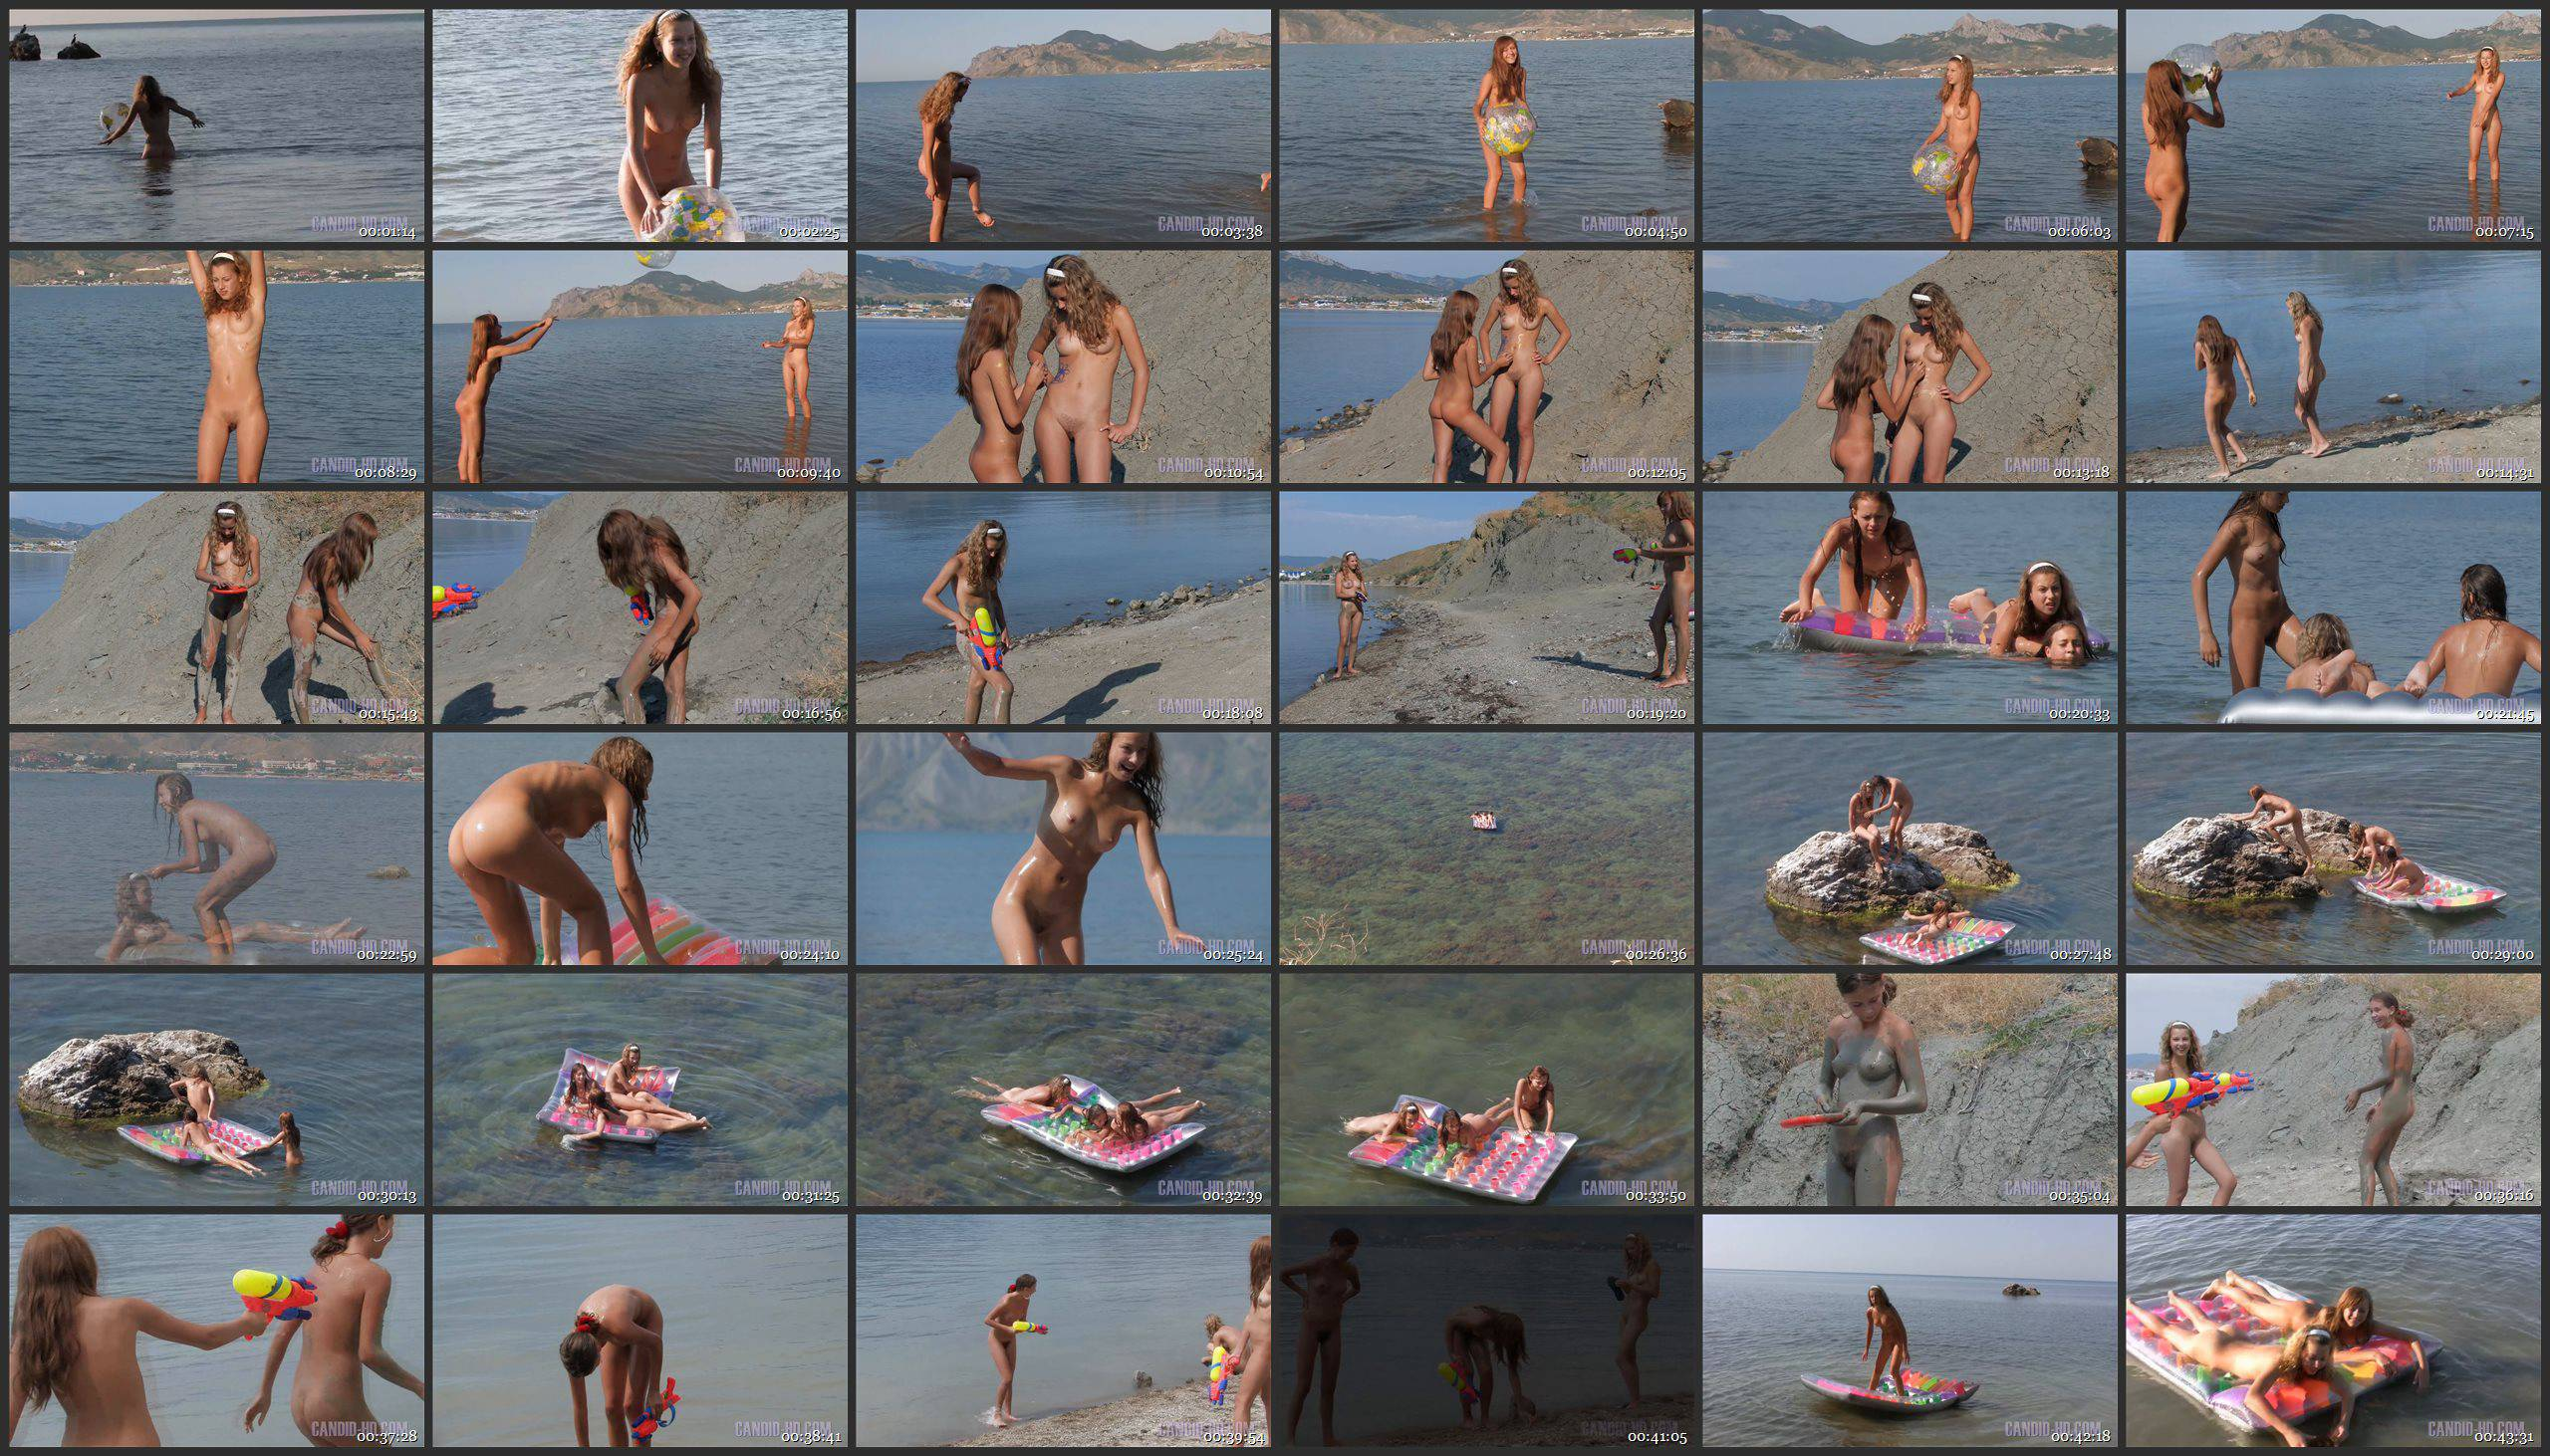 Candid-HD Nudist Girlfriends on Holiday 1 - Thumbnails